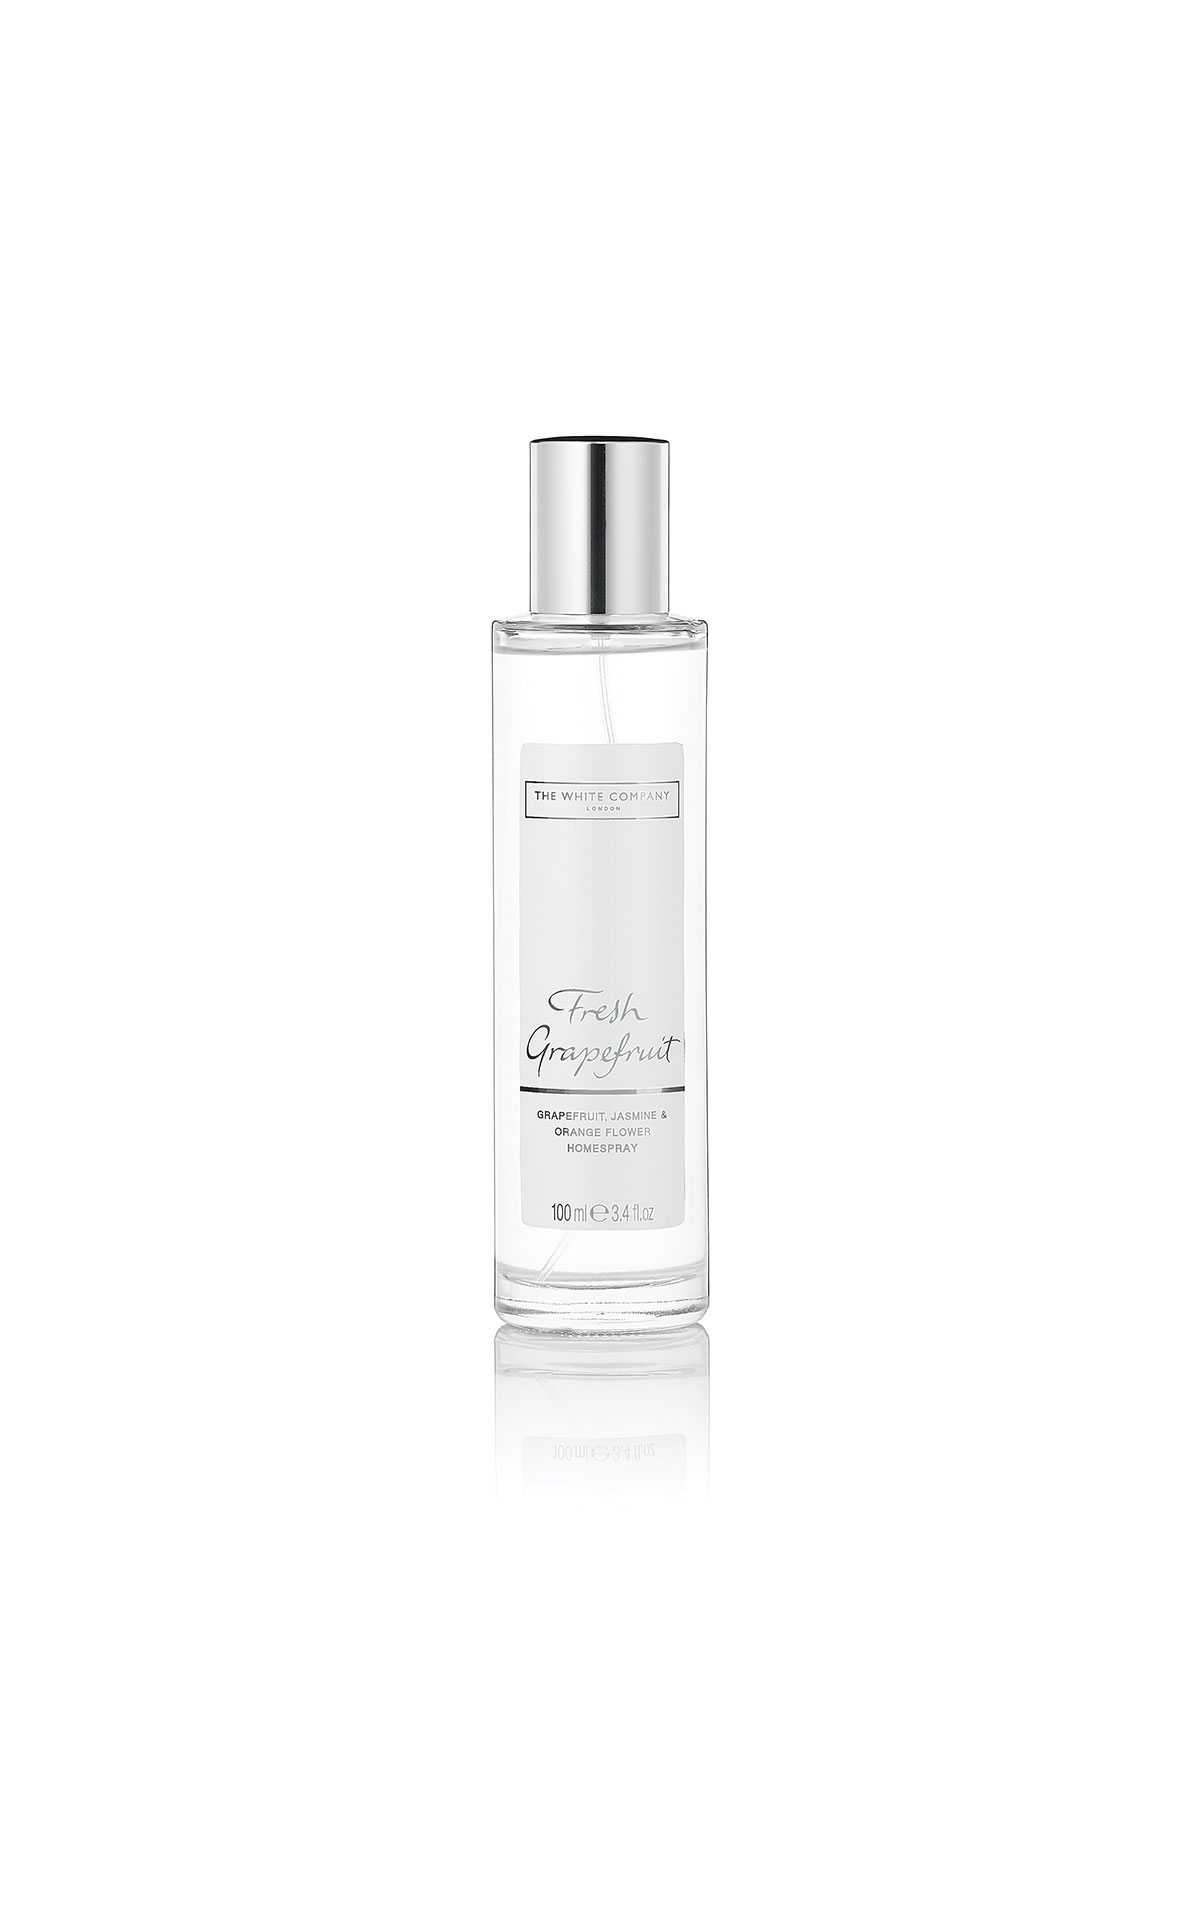 The White Company Fresh grapefruit home spray from Bicester Village